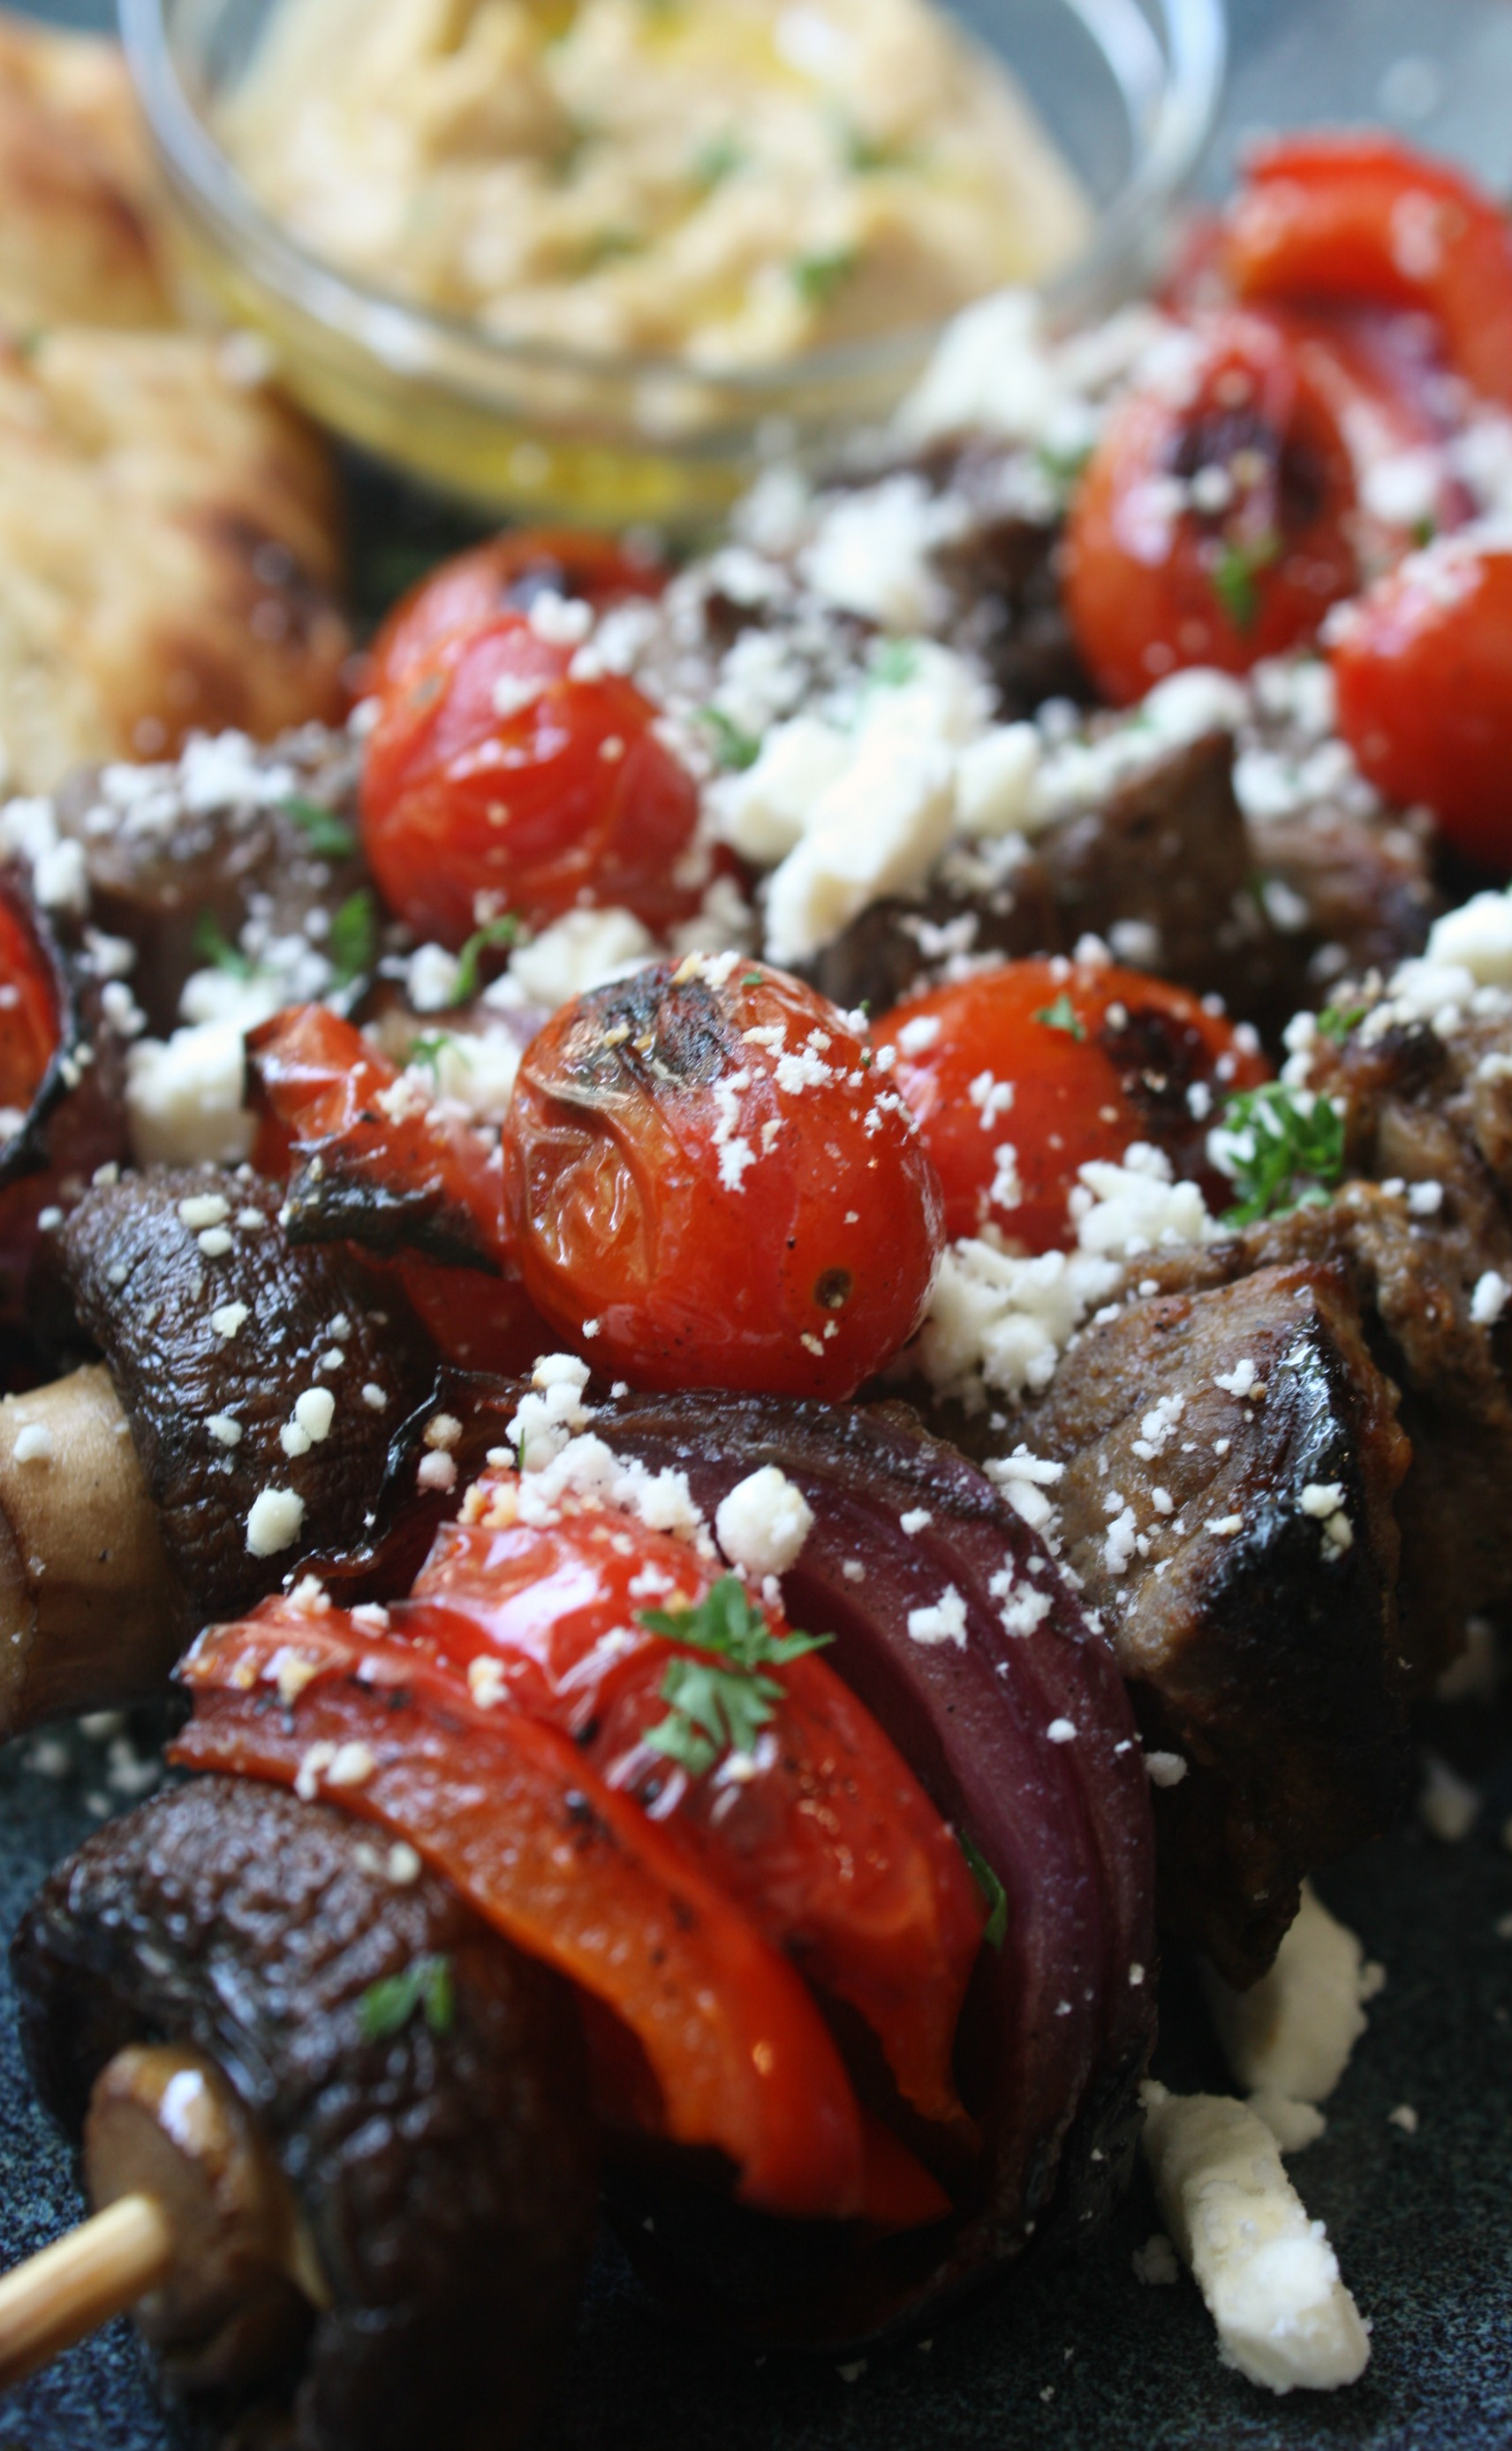 Marinated beef kabobs skewed with mushrooms, red bell pepper and red onions then grilled. Once the beef kabobs come off the grill they are topped with blistered cherry tomatoes and sprinkled with feta cheese.